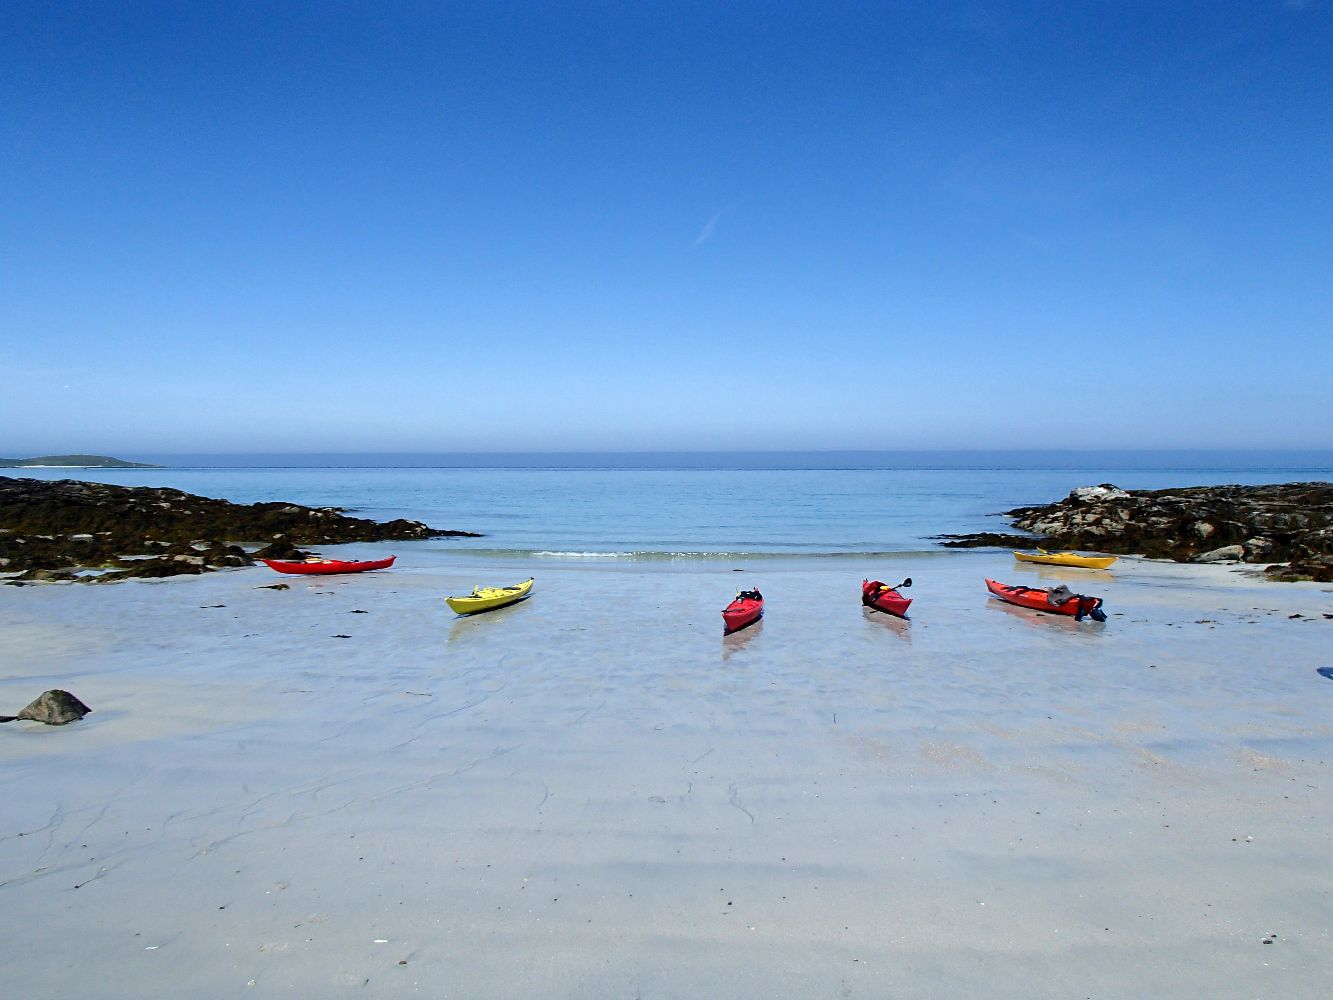 Clearwater Paddeling in Barra  by Cal McTravel of www.CalMcTraves.com